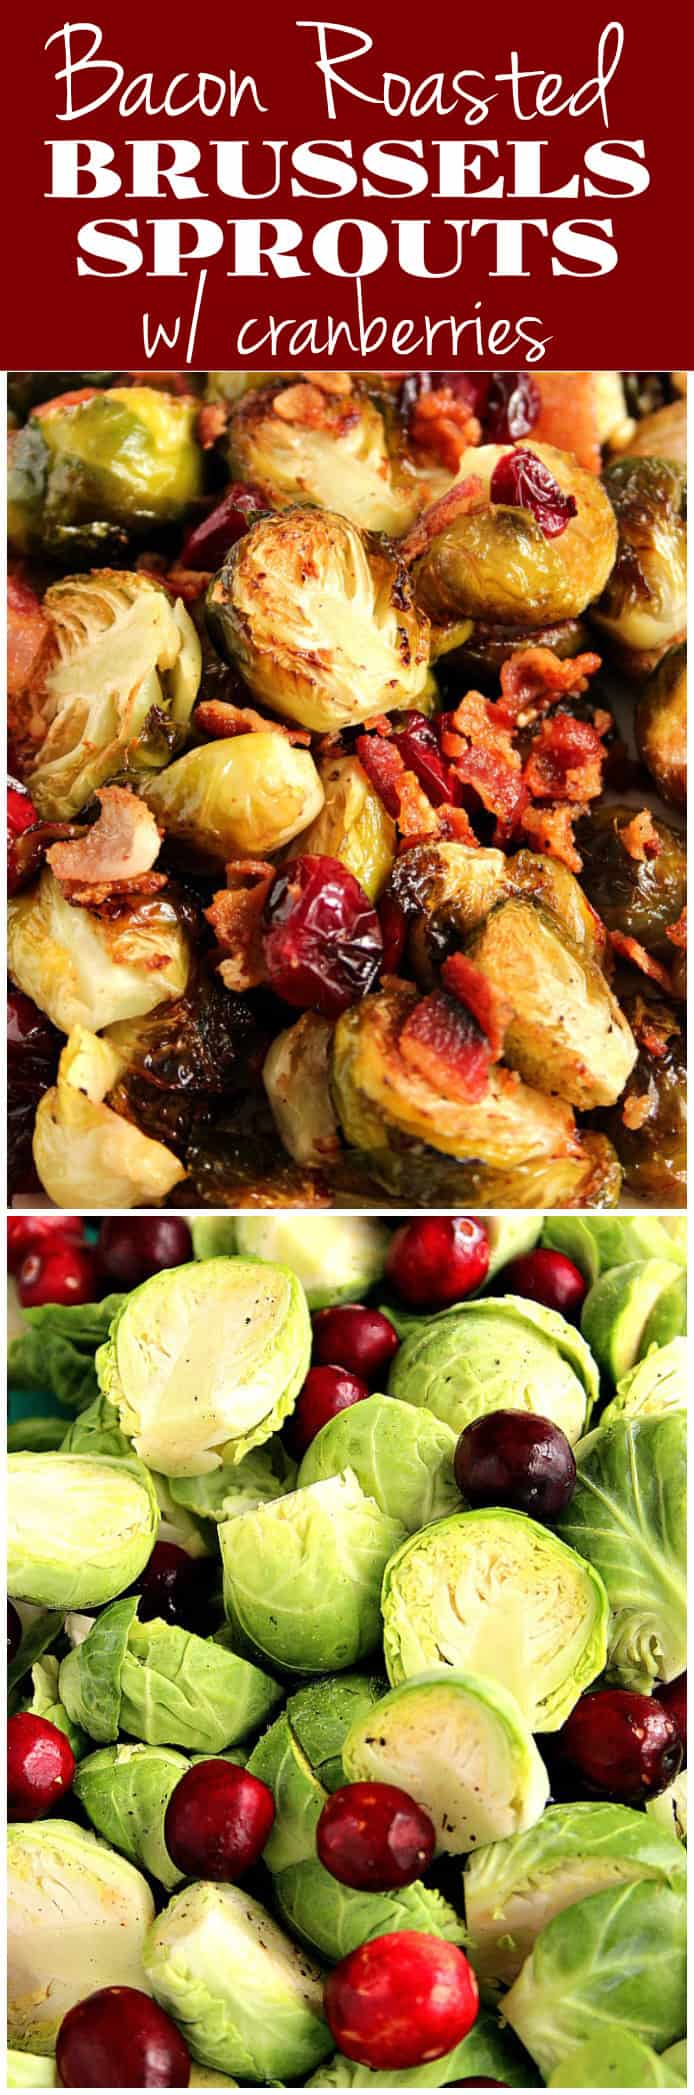 1roasted Brussels sprouts with bacon recipe long Bacon Roasted Brussels Sprouts with Cranberries Recipe